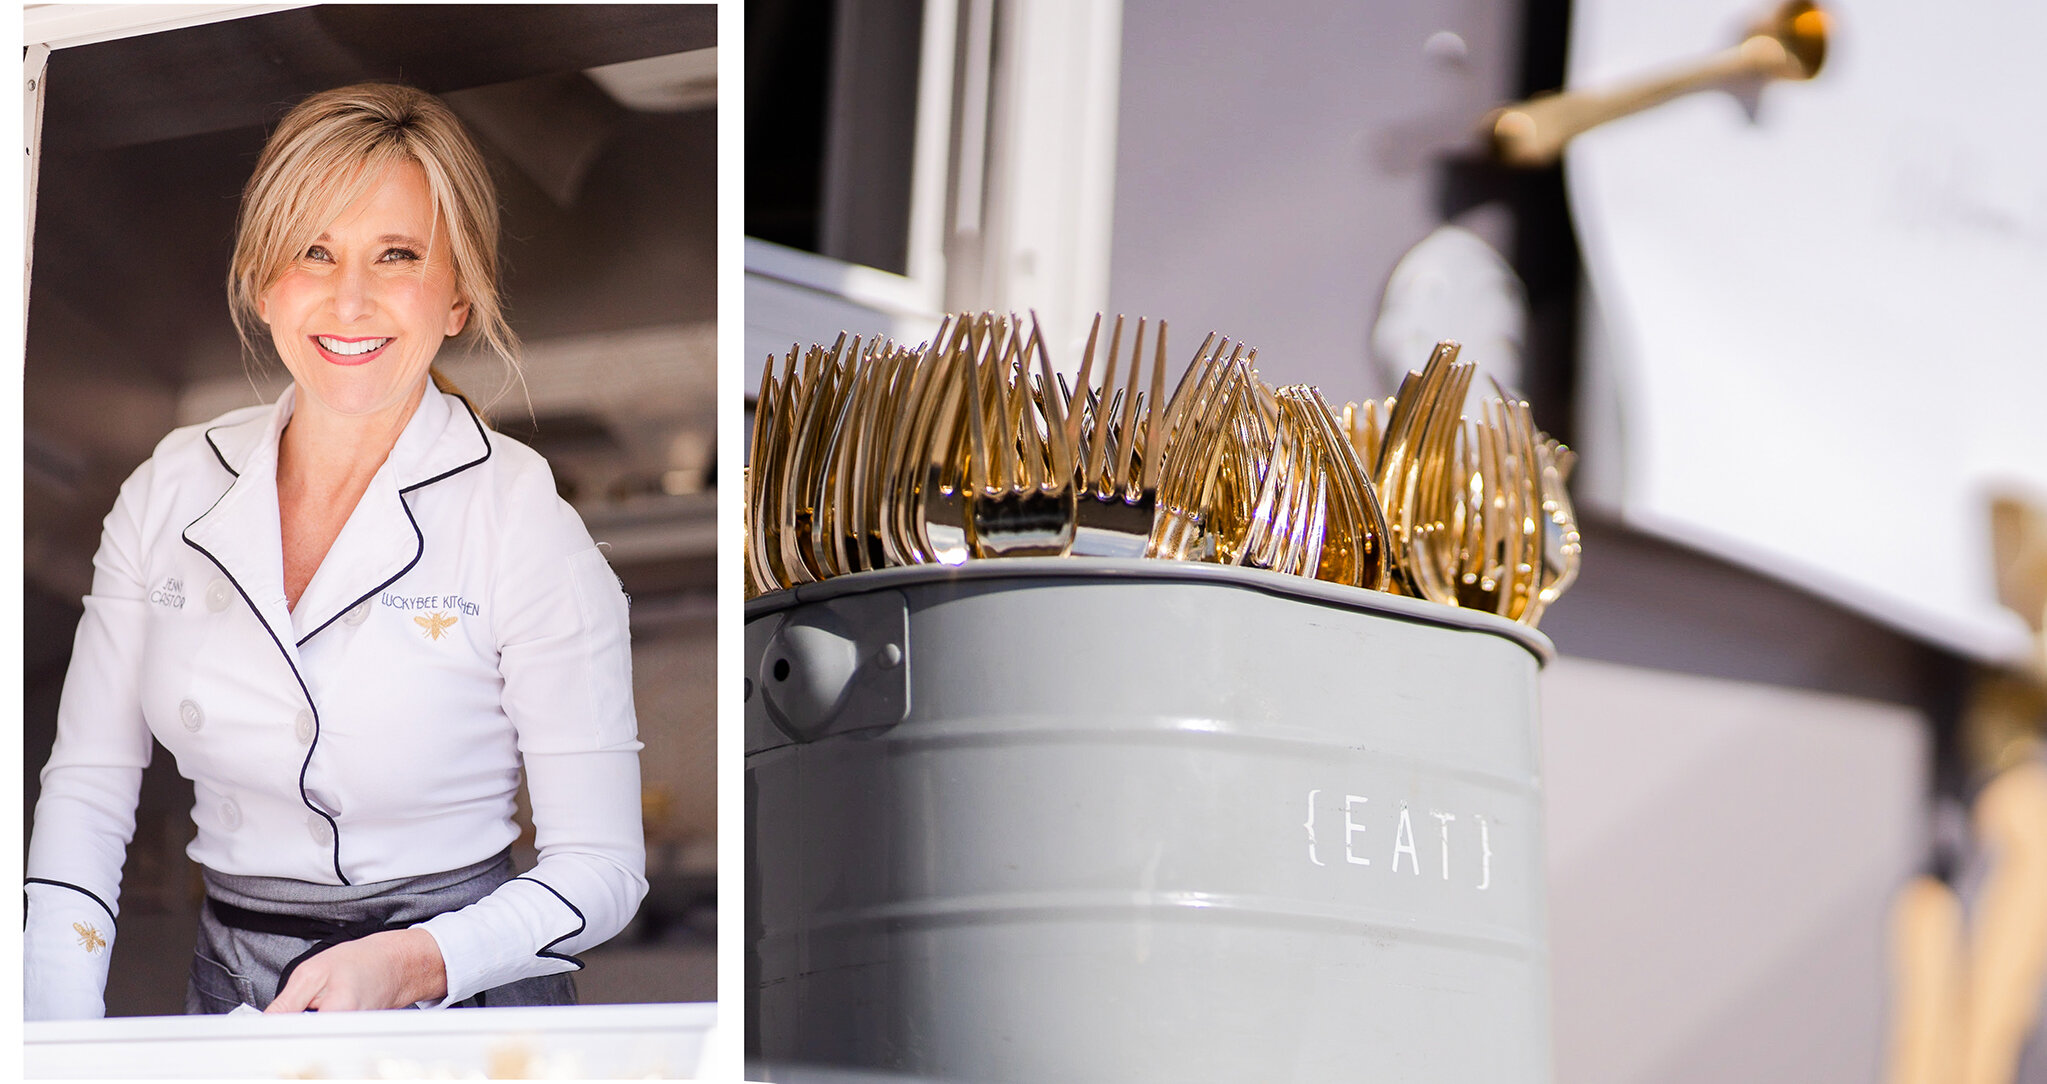 photos of personal chef in white coat and detail images of gold forks